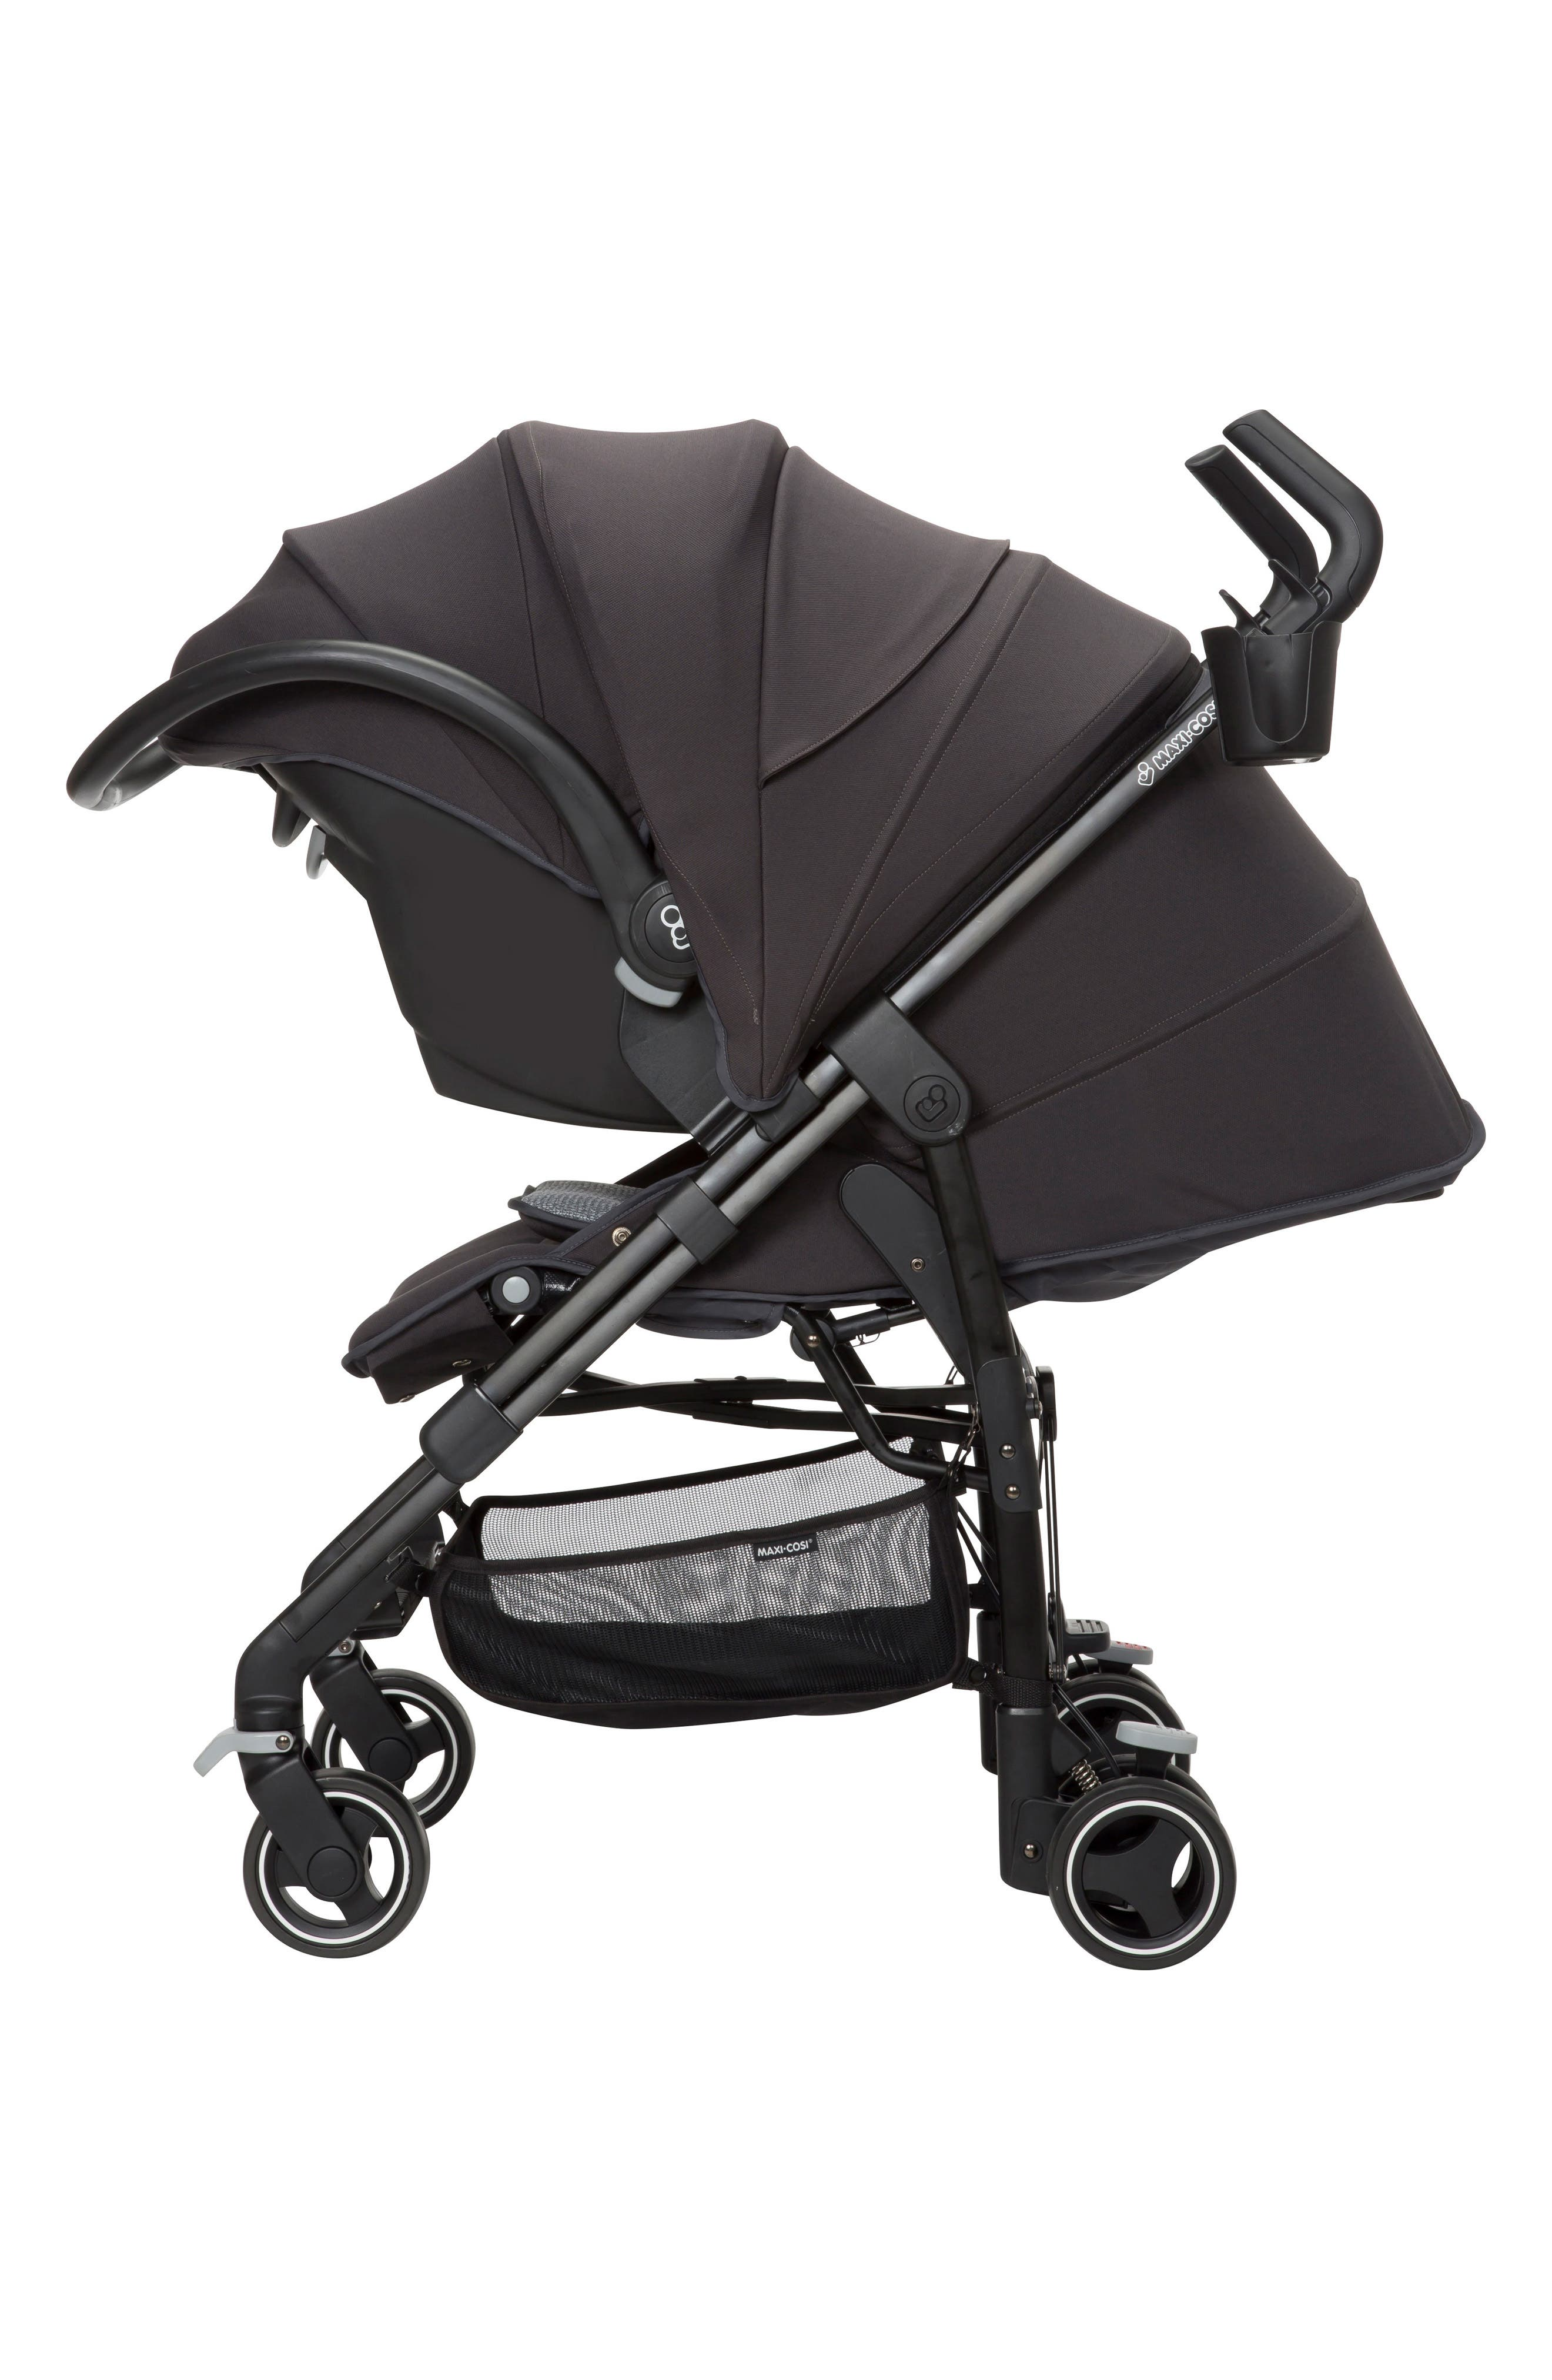 Dana Sweater Knit Special Edition Stroller,                             Alternate thumbnail 11, color,                             024